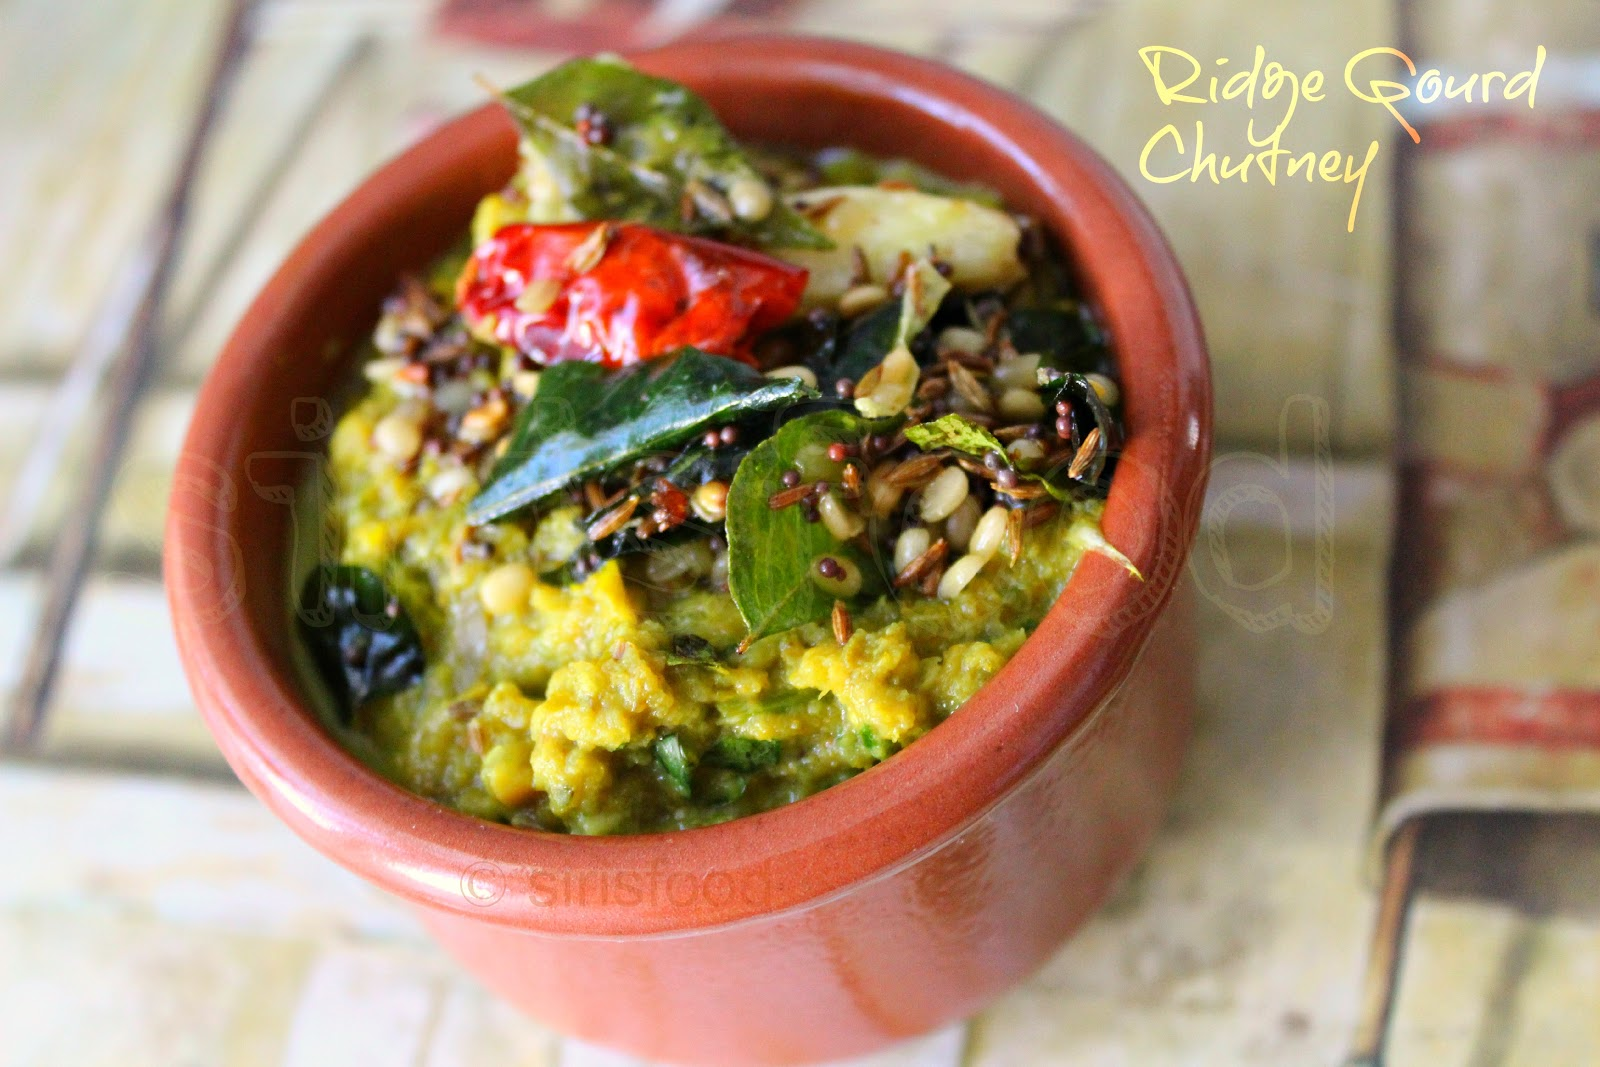 Ridge gourd chutney andhra beerakaya pachadi andhra recipes as i said before andhra is very famous for freshly prepared chutneys with vegetableswe cant finish our meal without having a dollop of freshly prepared forumfinder Choice Image